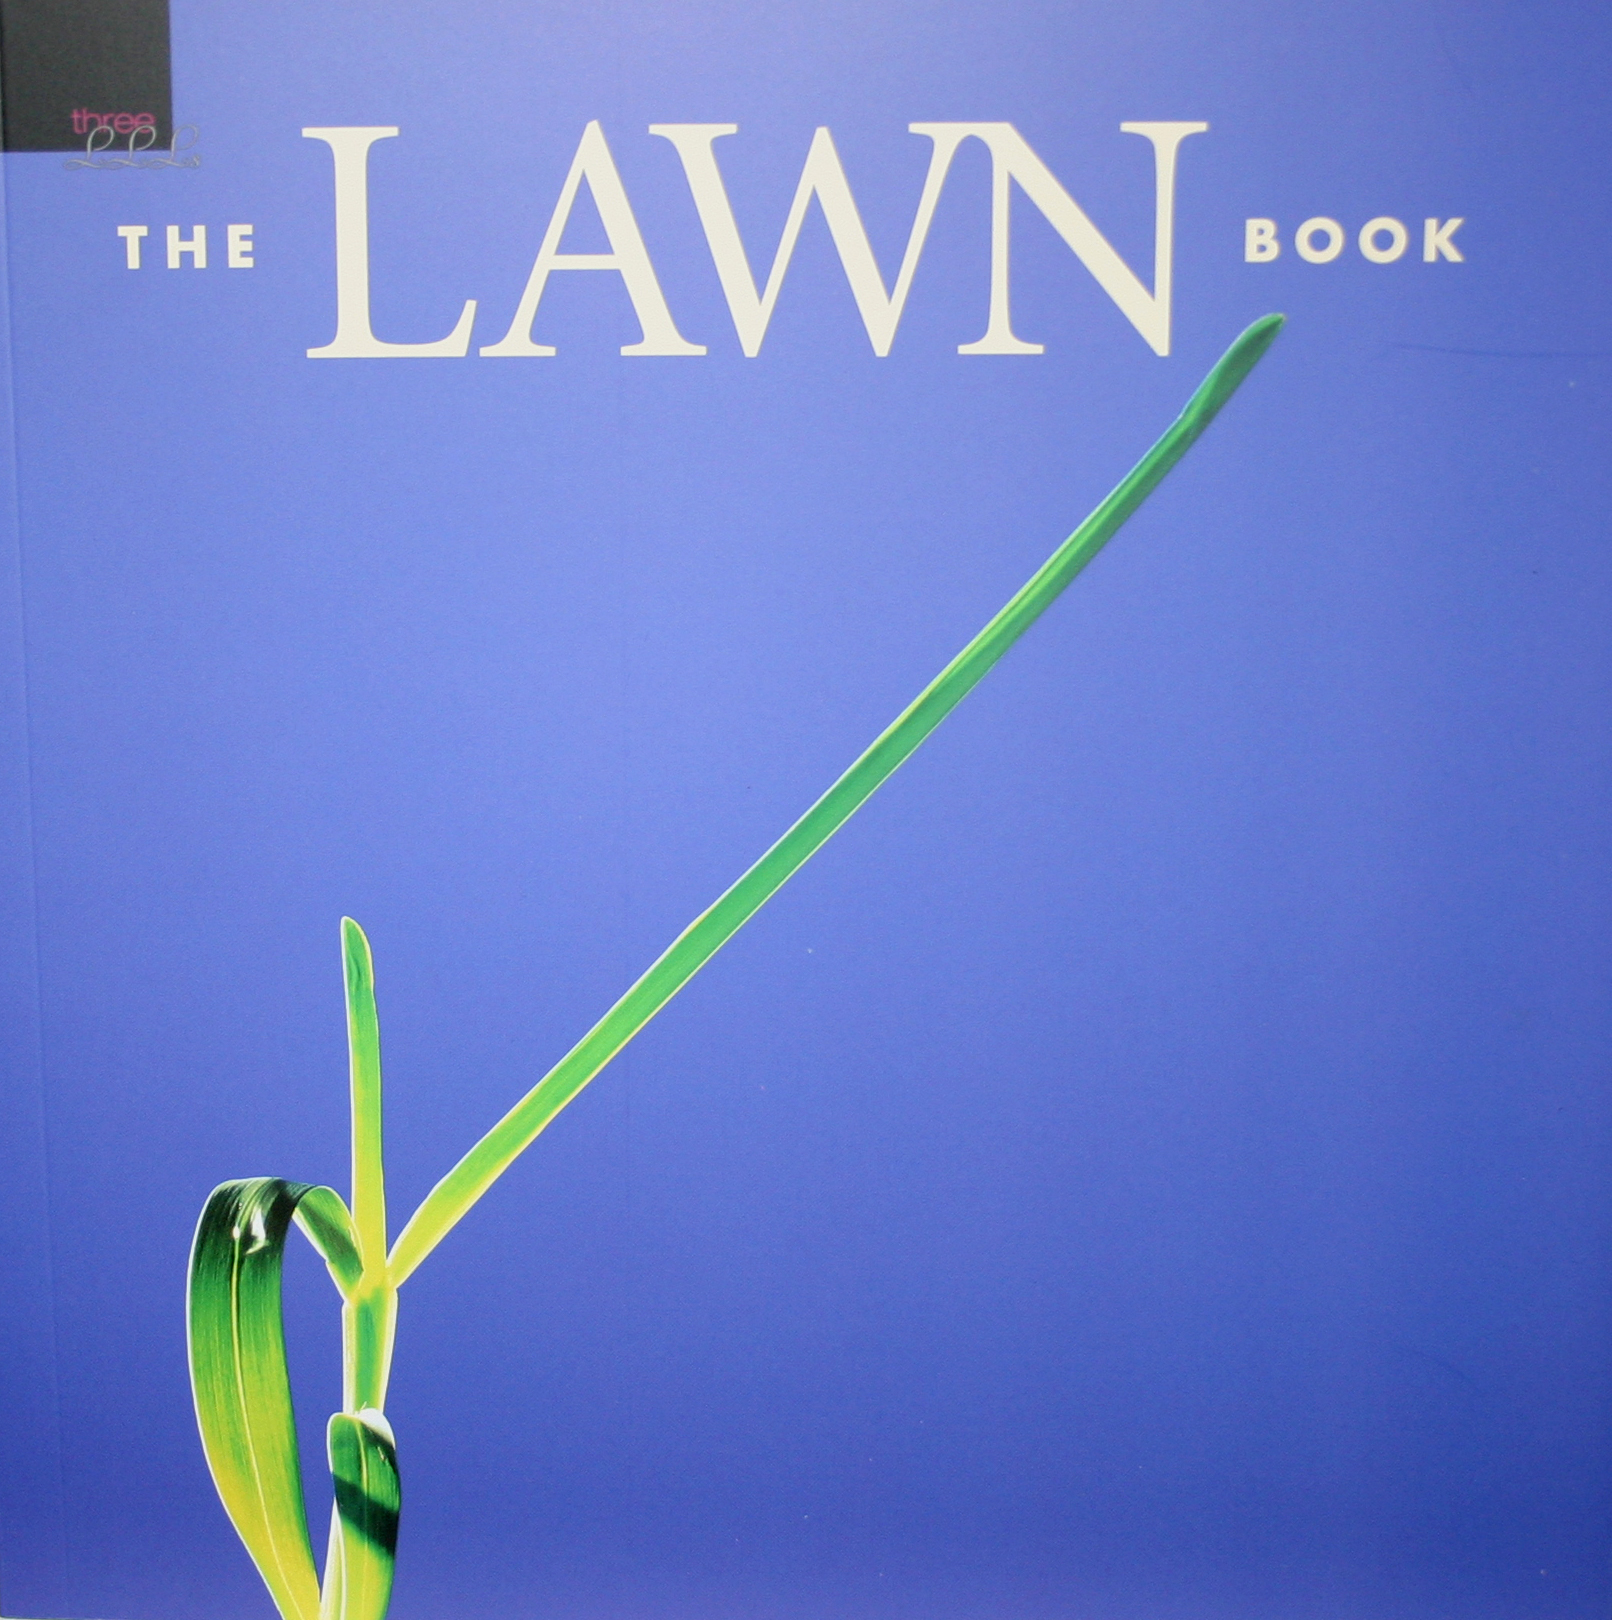 The Lawn Book